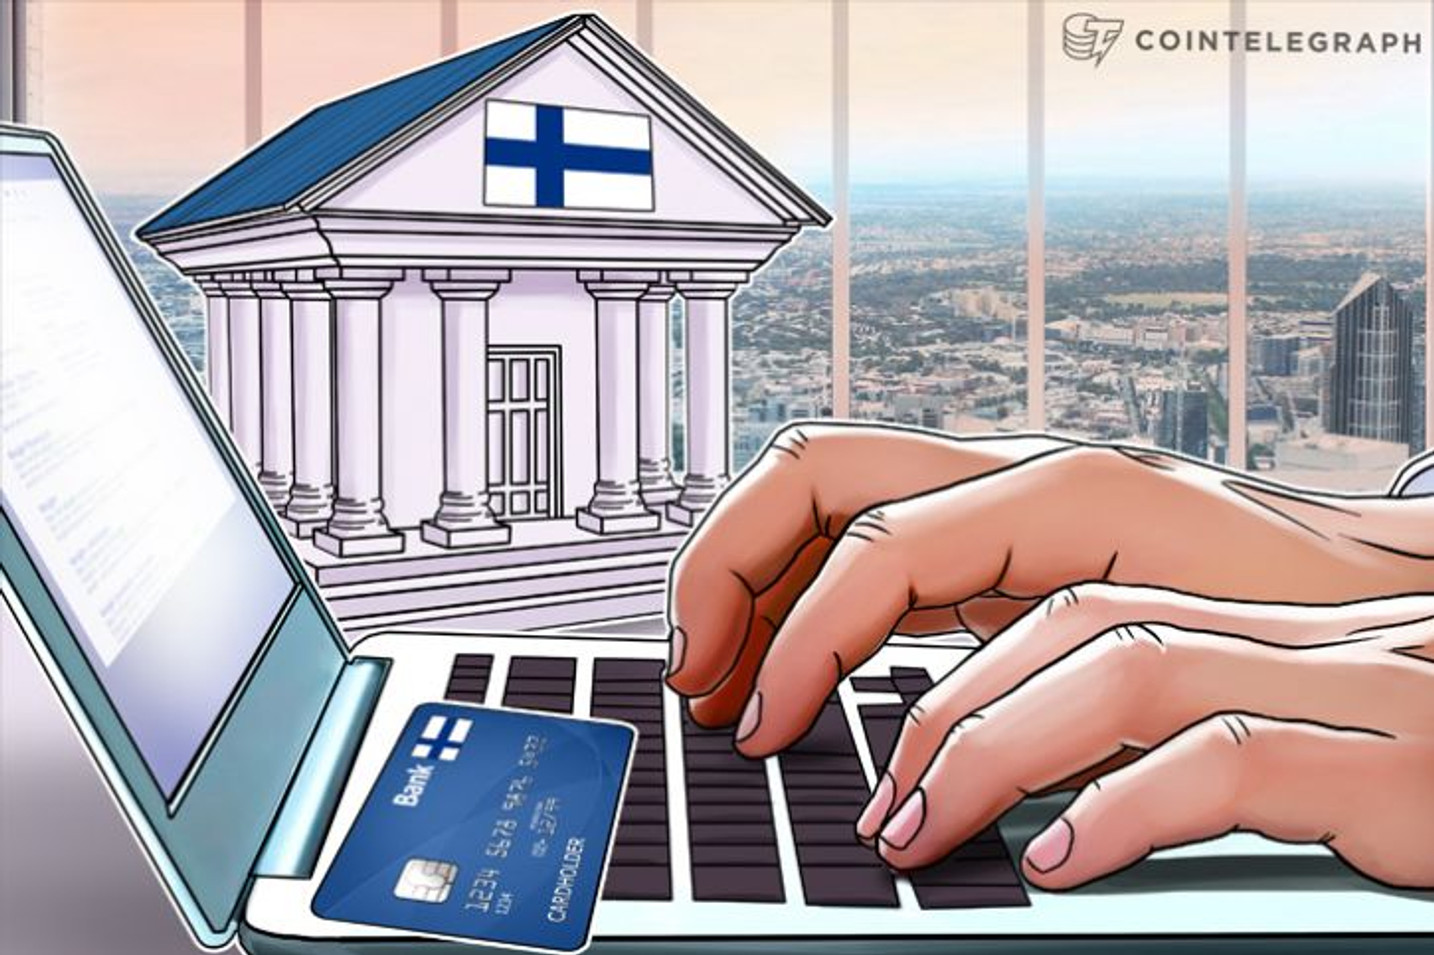 Bank of Finland Researchers Praise Bitcoin's Economic System as Revolutionary